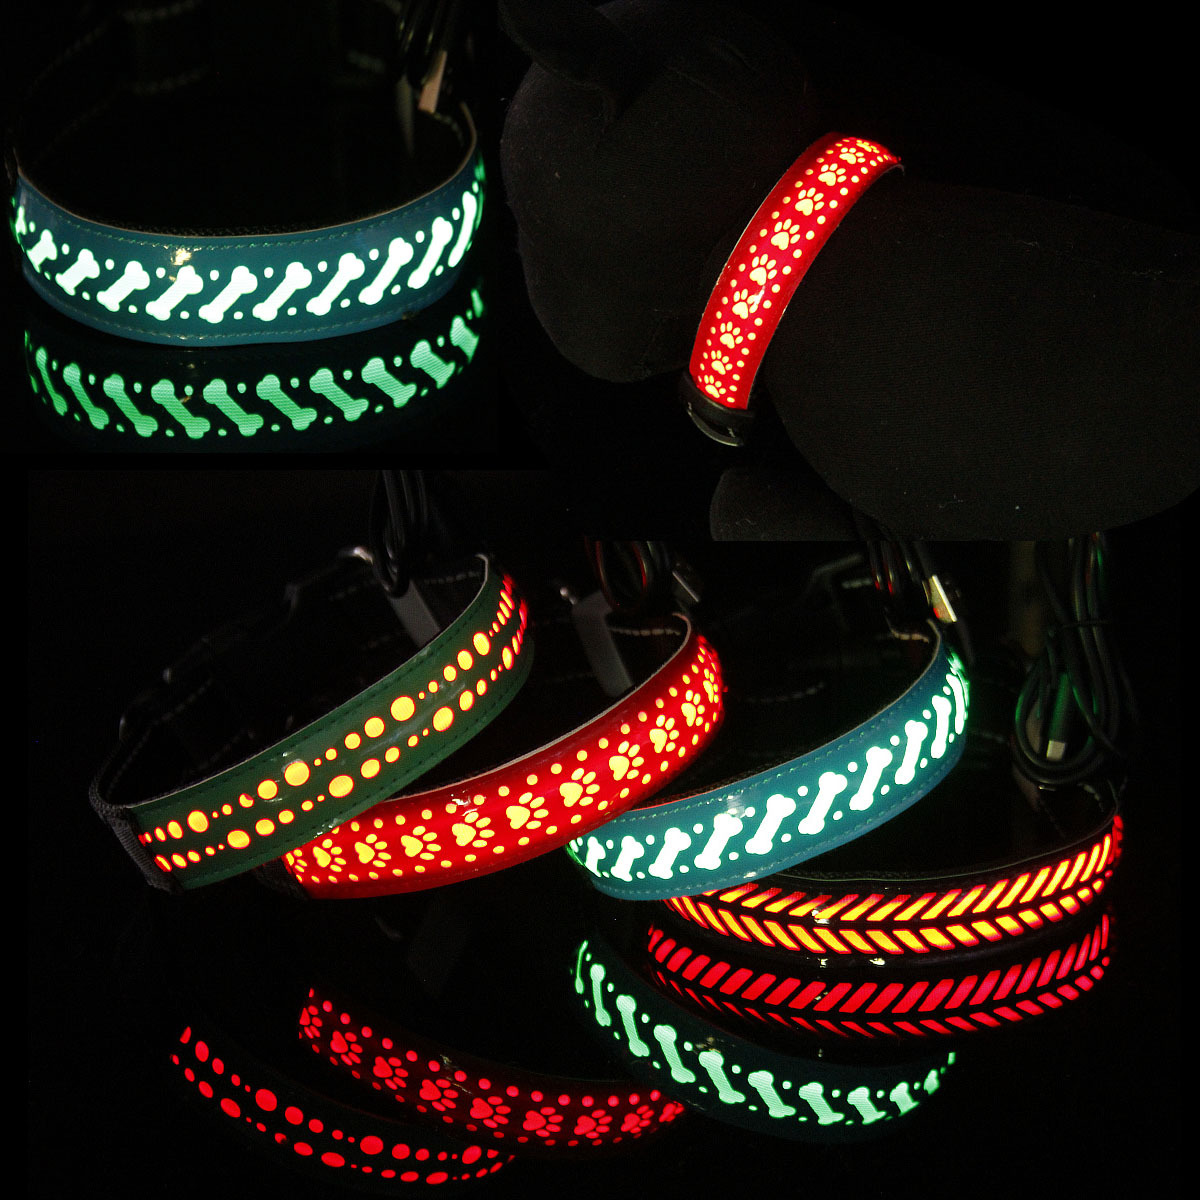 2018 Hot Selling LED Shining Pet Dog Collar Varved Hide Substance Different Floral Varved Neck Ring